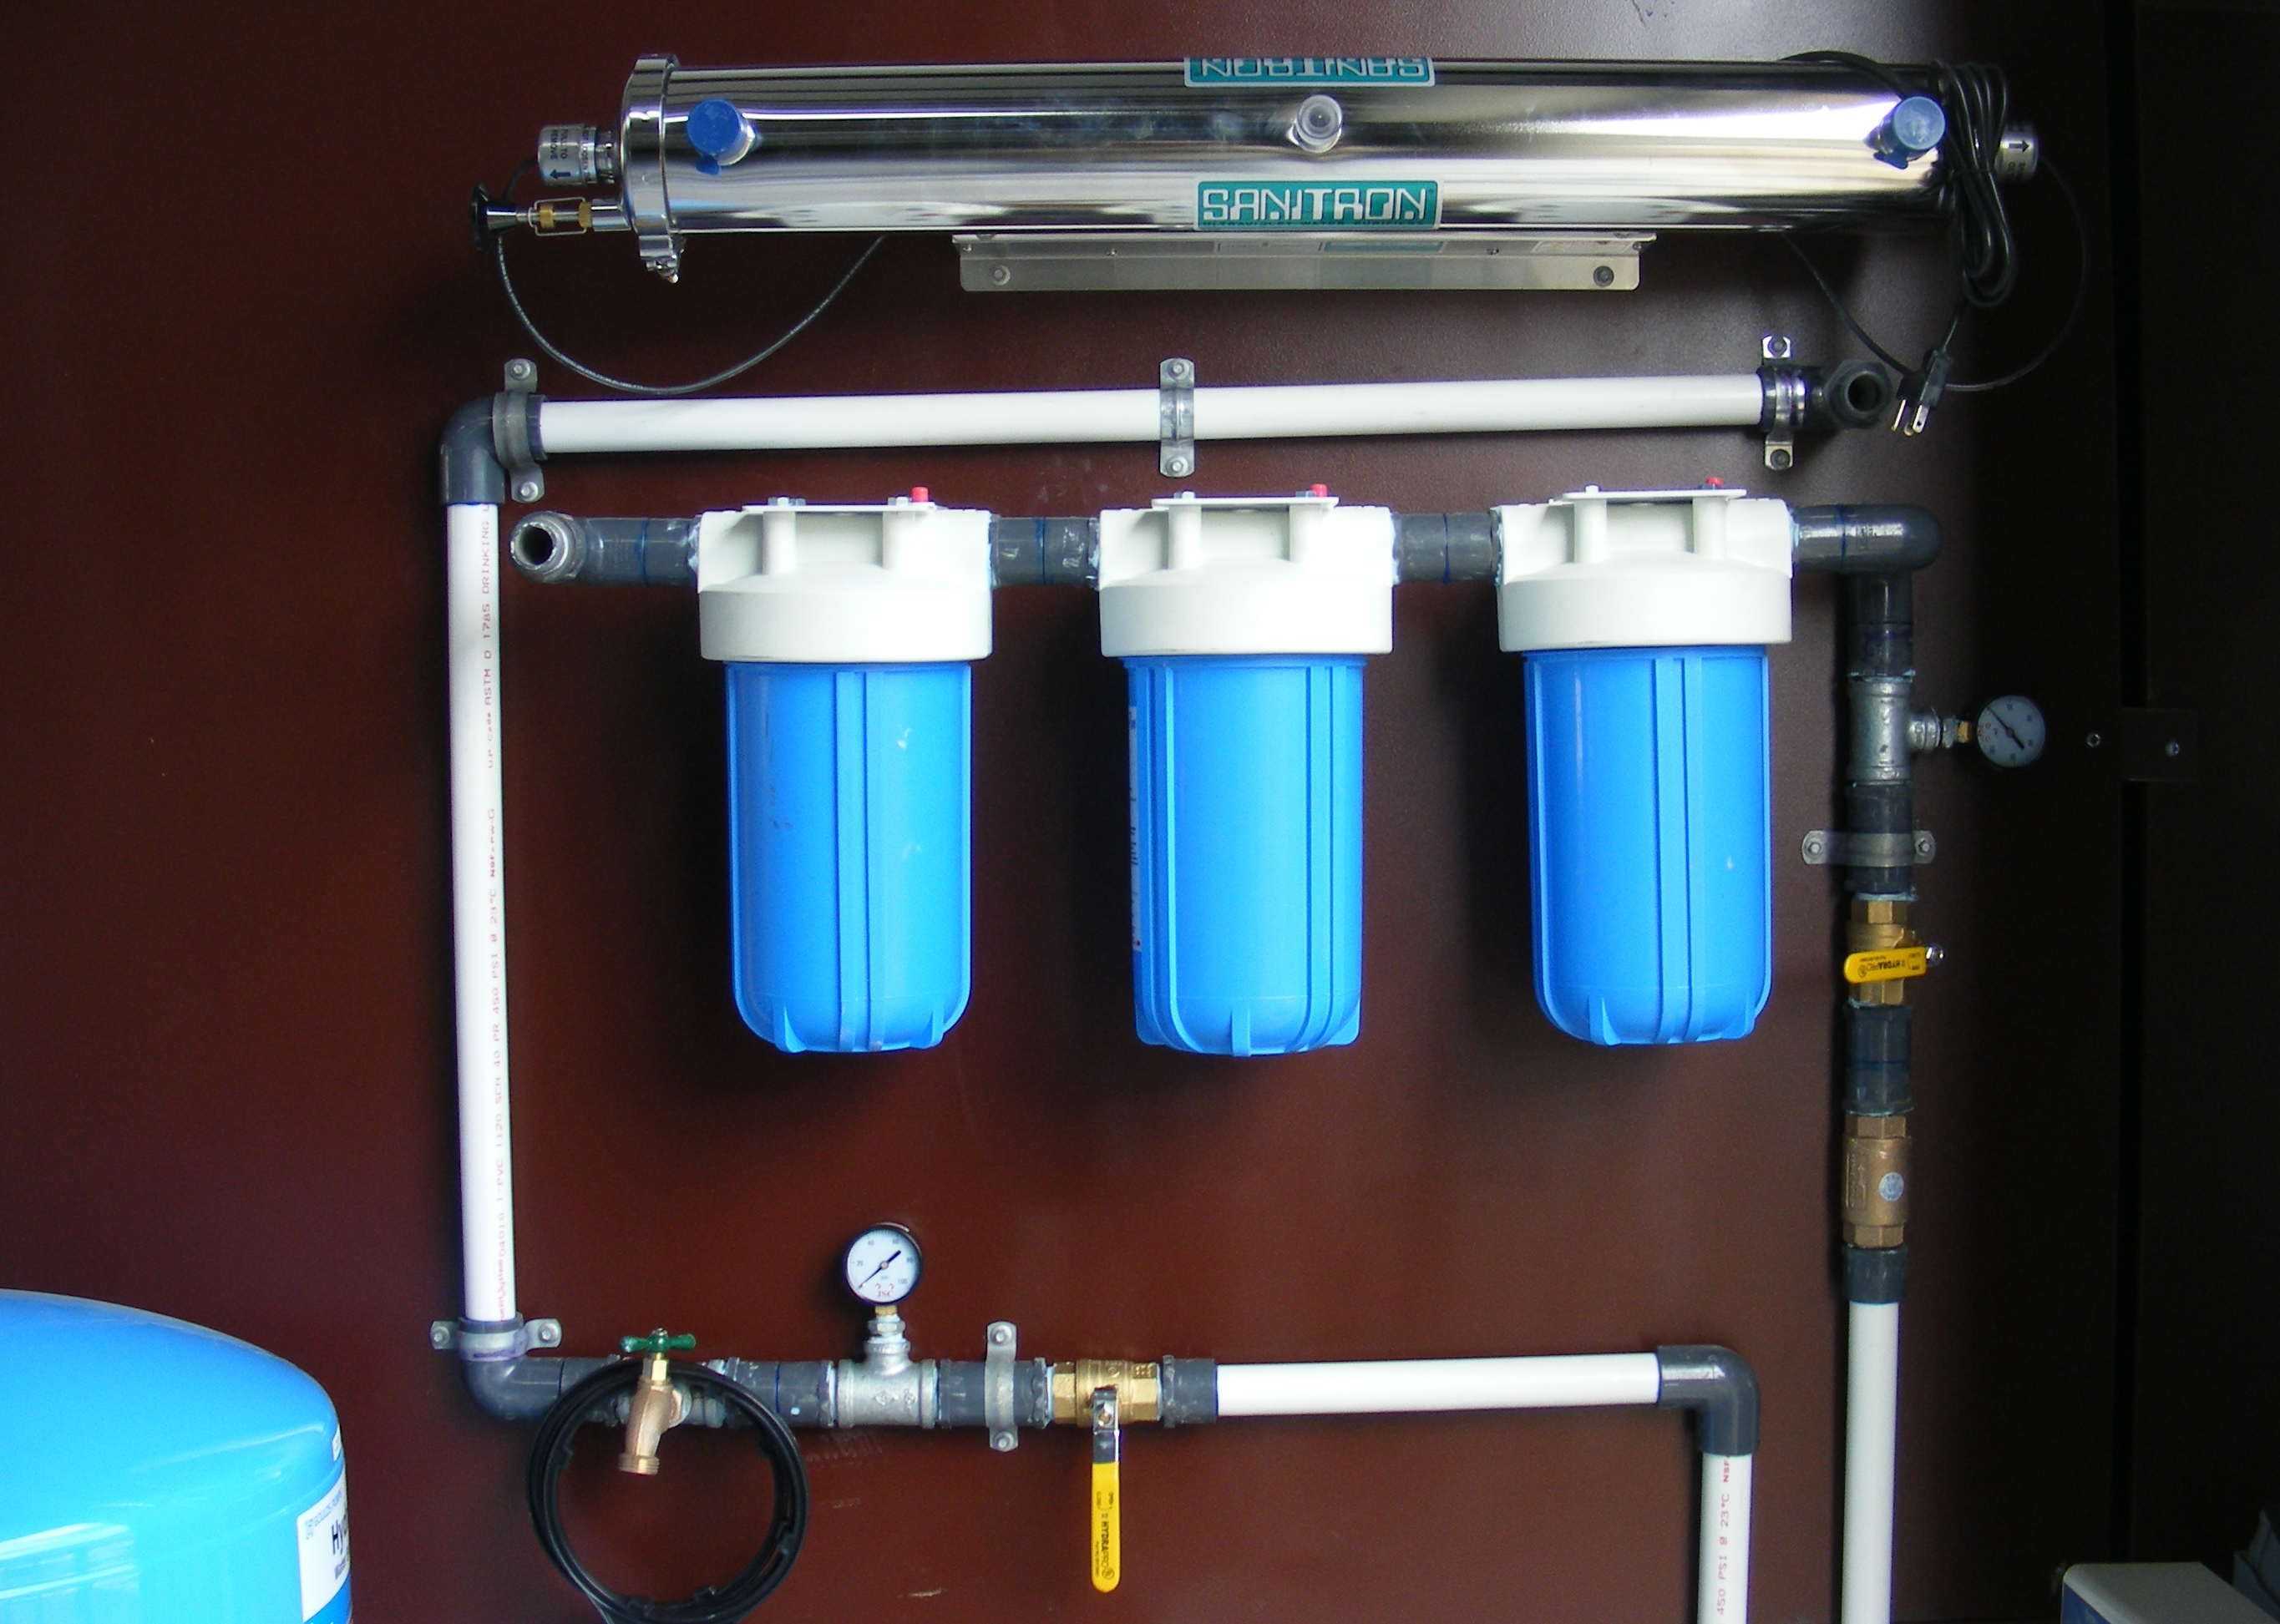 Sanitron Uv Filter System